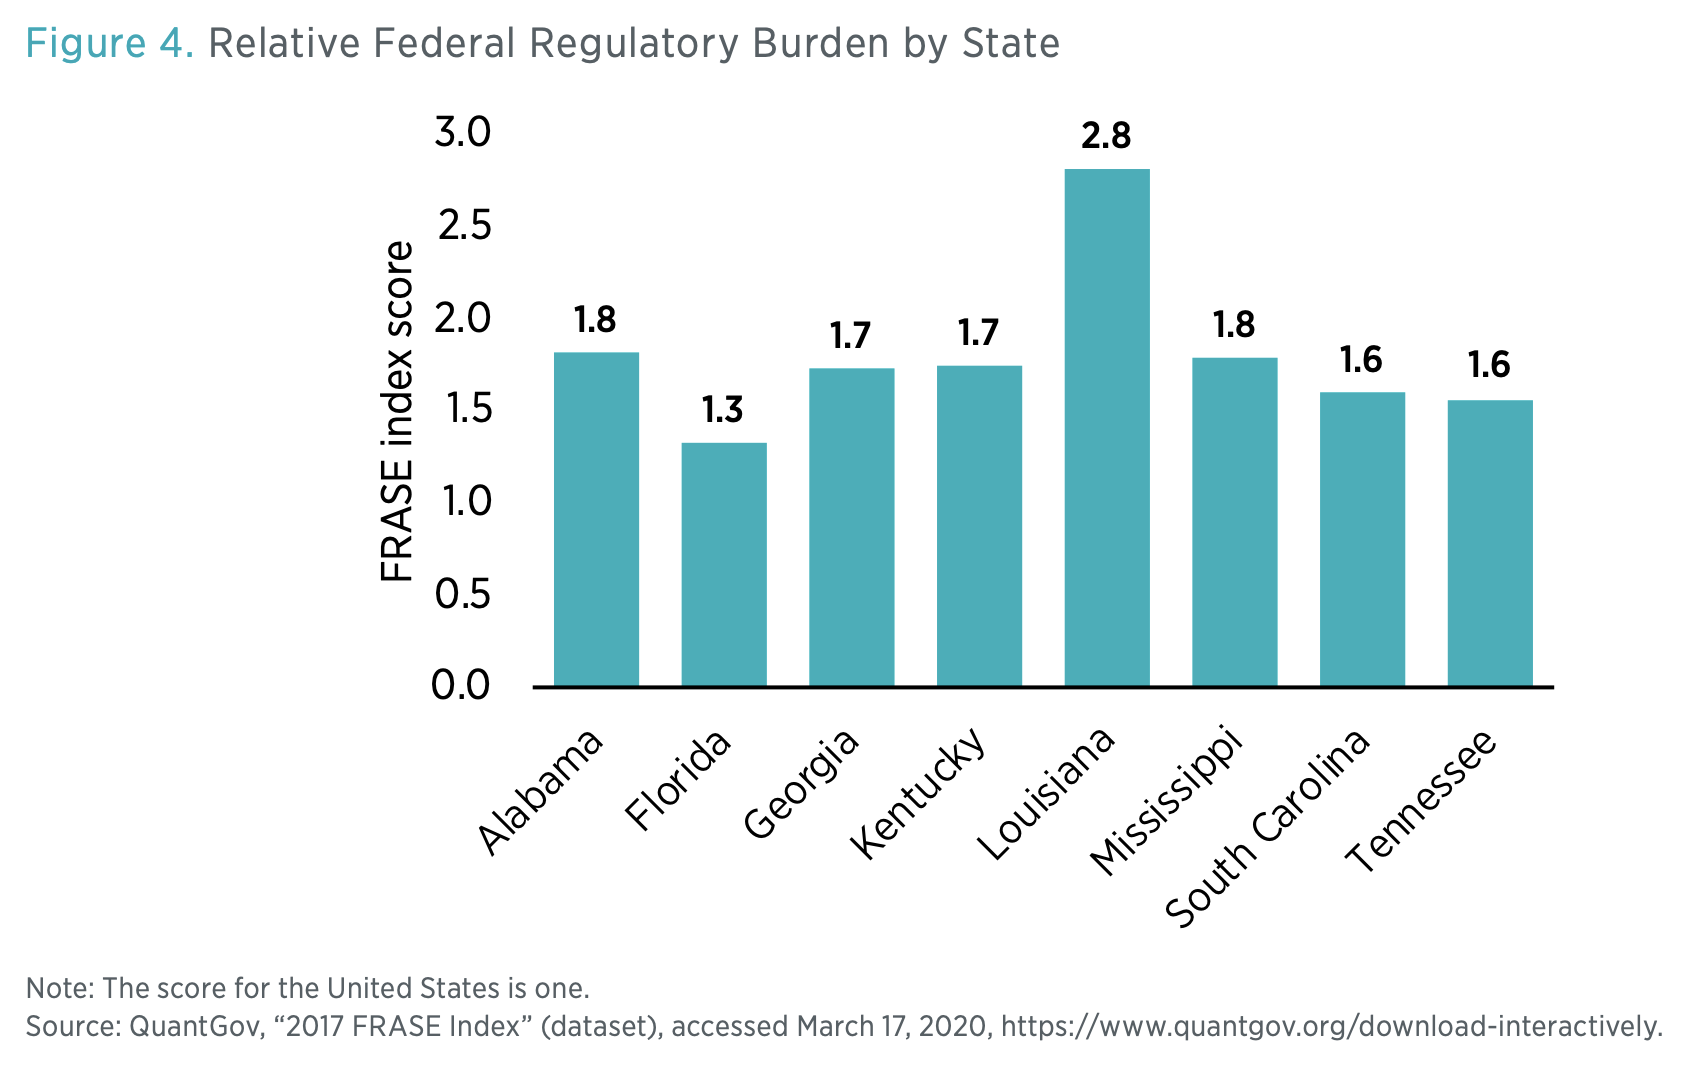 Figure 4. Relative Federal Regulatory Burden by State